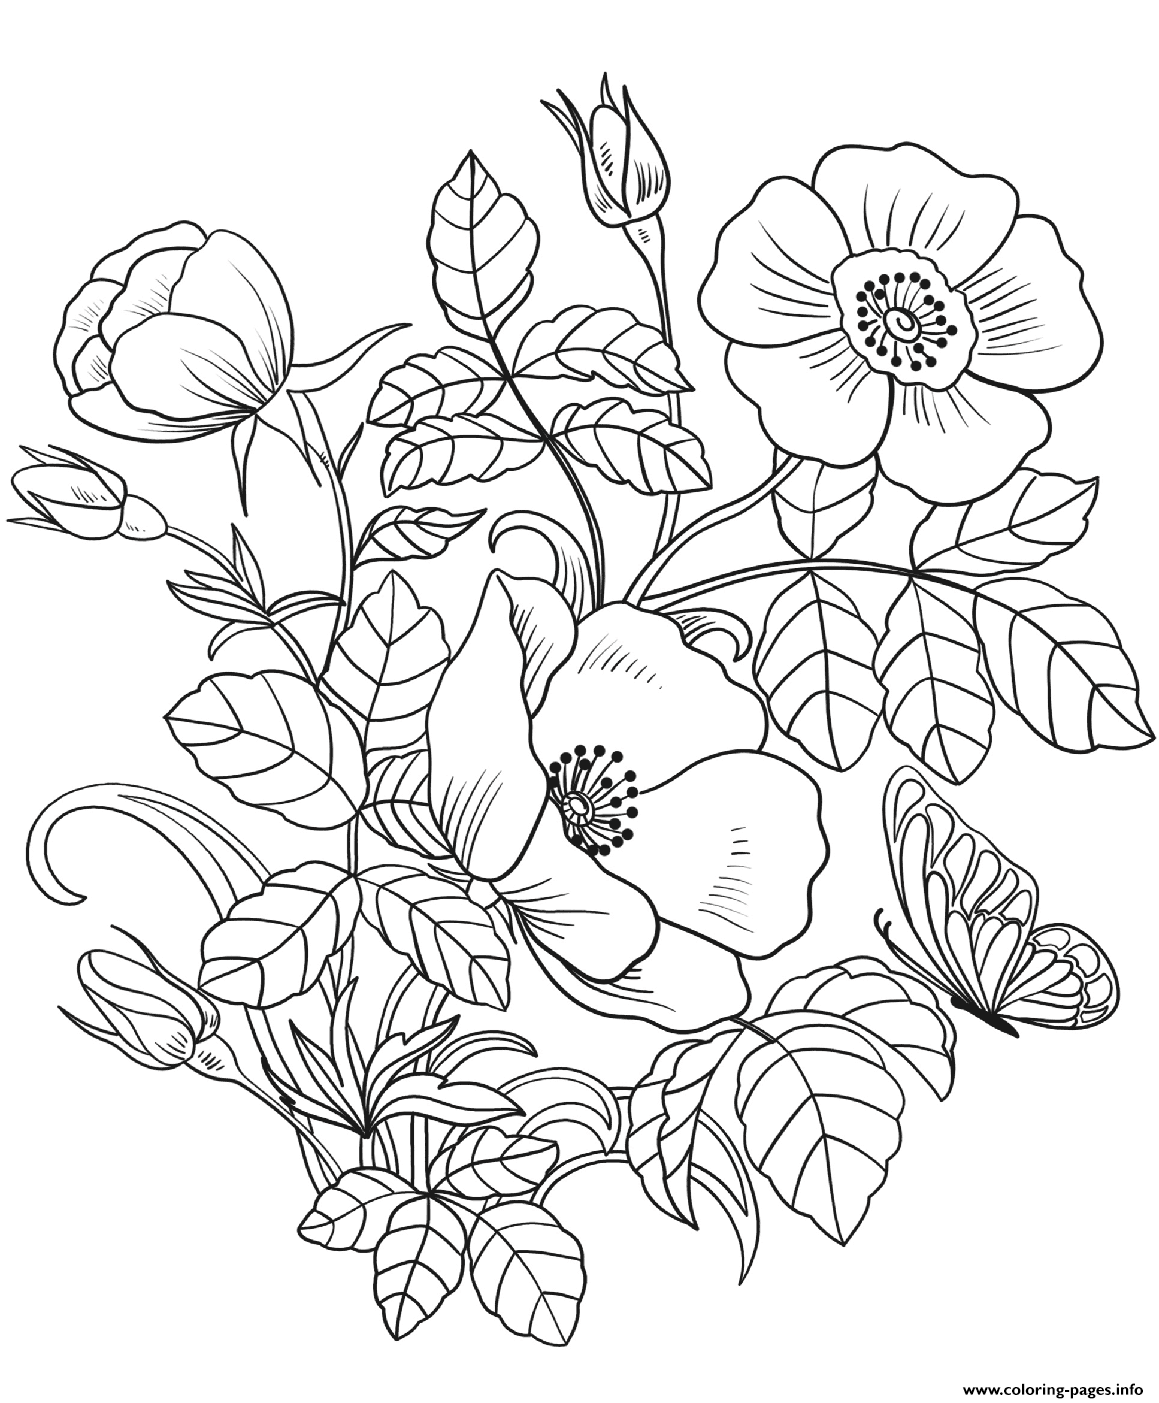 flower coloring book pages free printable flower coloring pages for kids cool2bkids flower pages book coloring